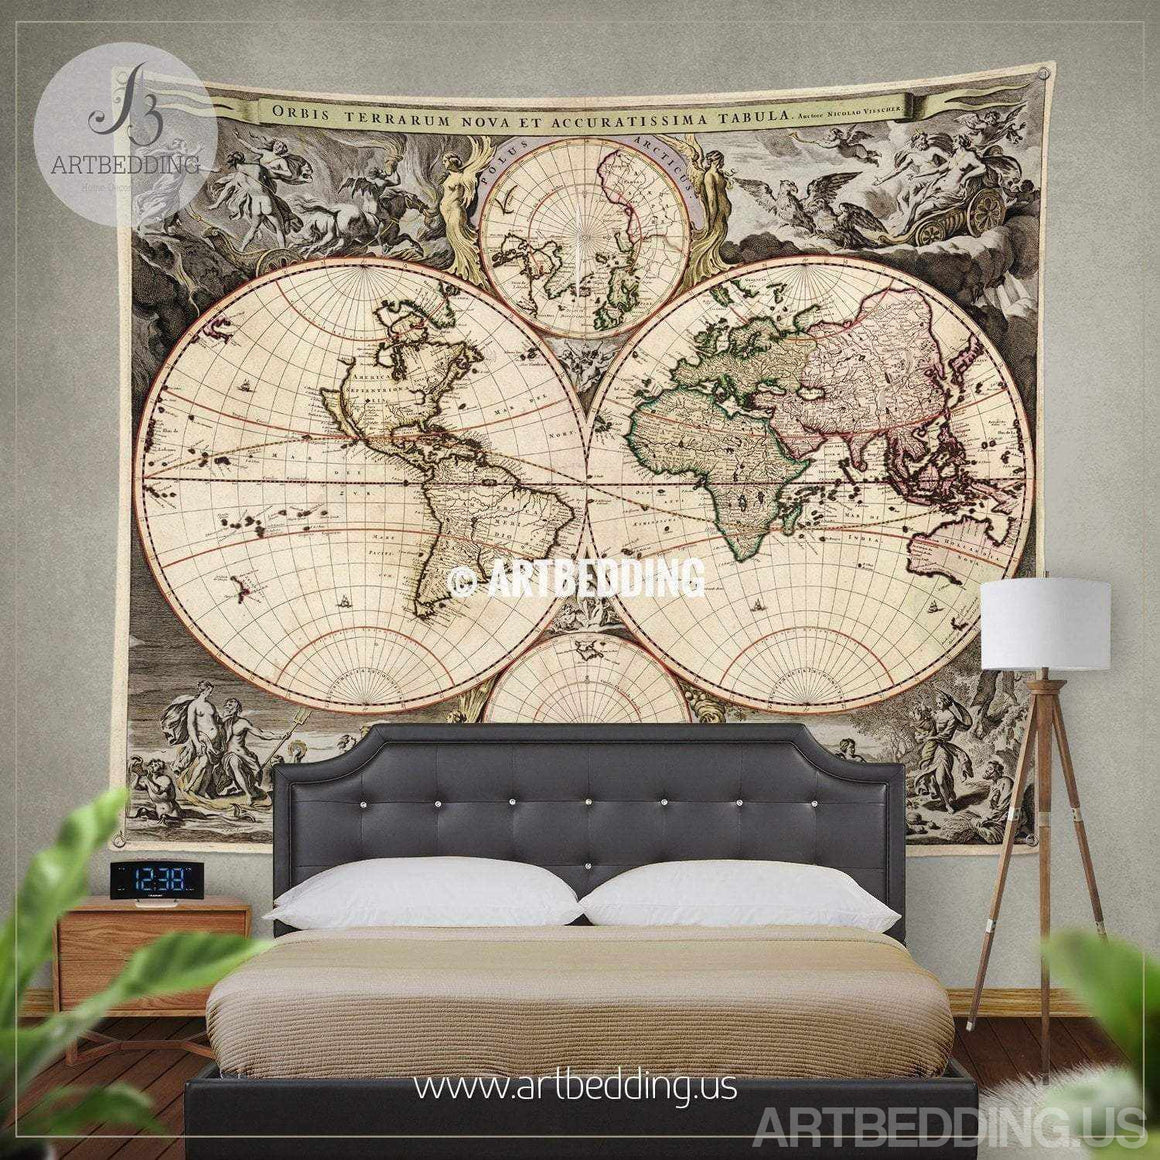 Antique world map wall tapestry, vintage world map wall hanging, vintage old map wall decor, Steampunk wall art print Tapestry